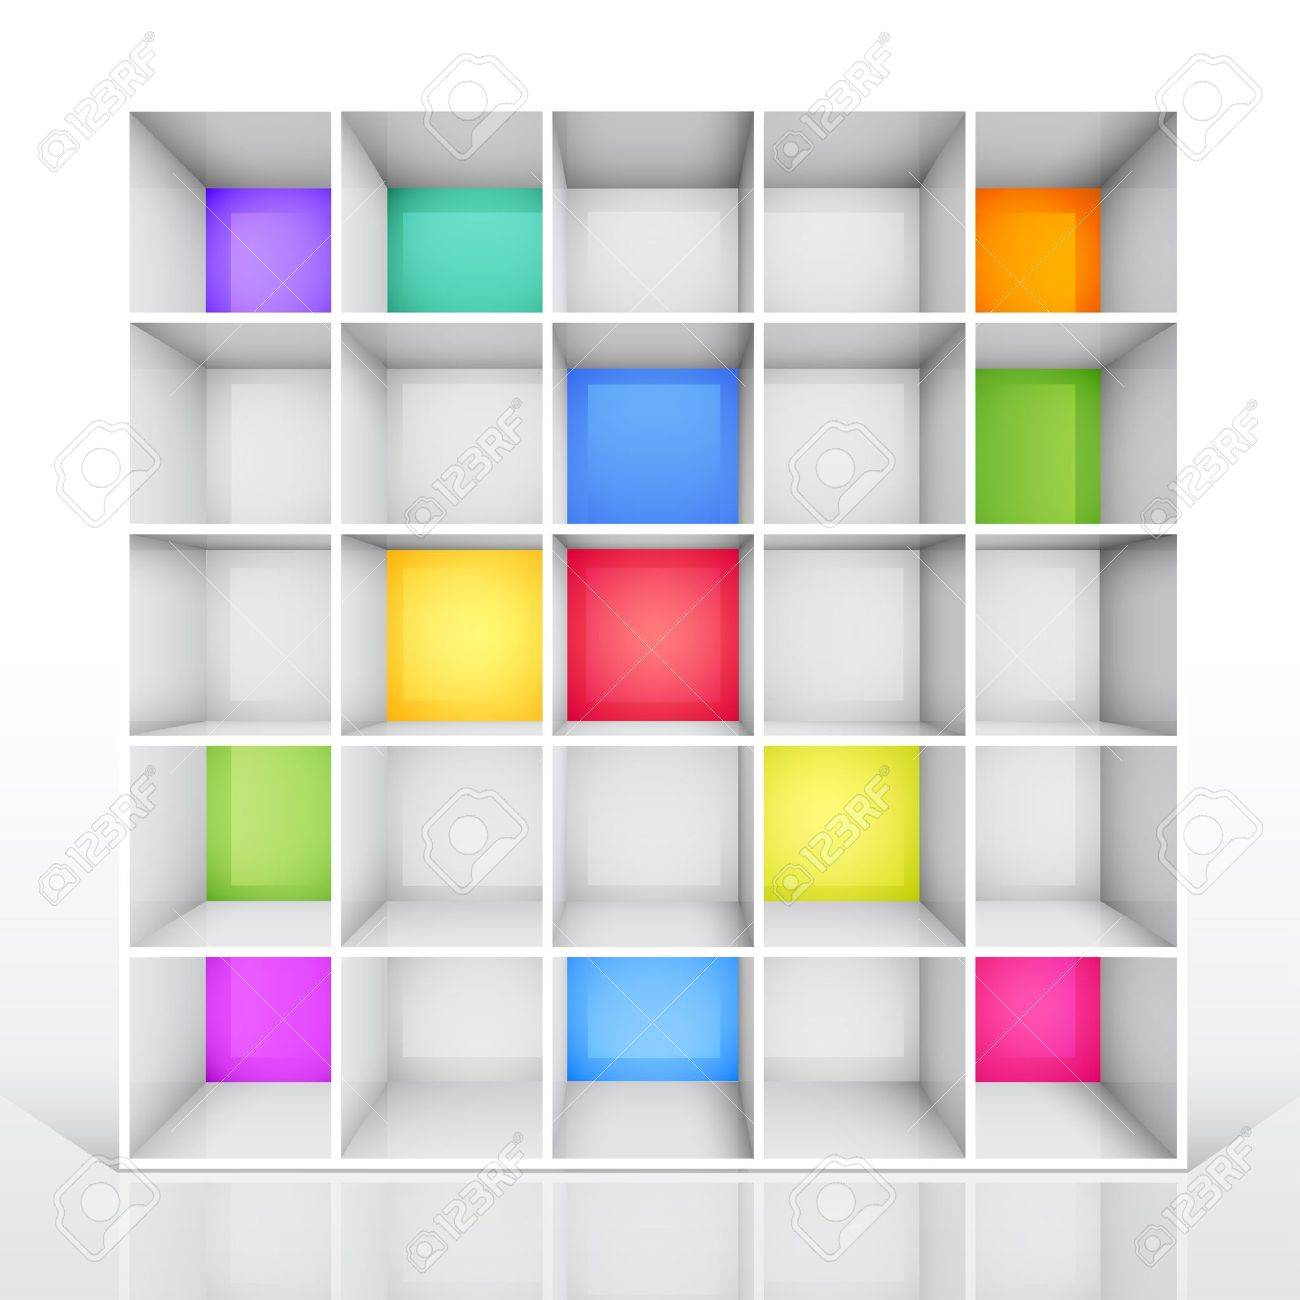 3d isolated Empty colorful bookshelf. Stock Vector - 9566439 - 3d Isolated Empty Colorful Bookshelf. Royalty Free Cliparts